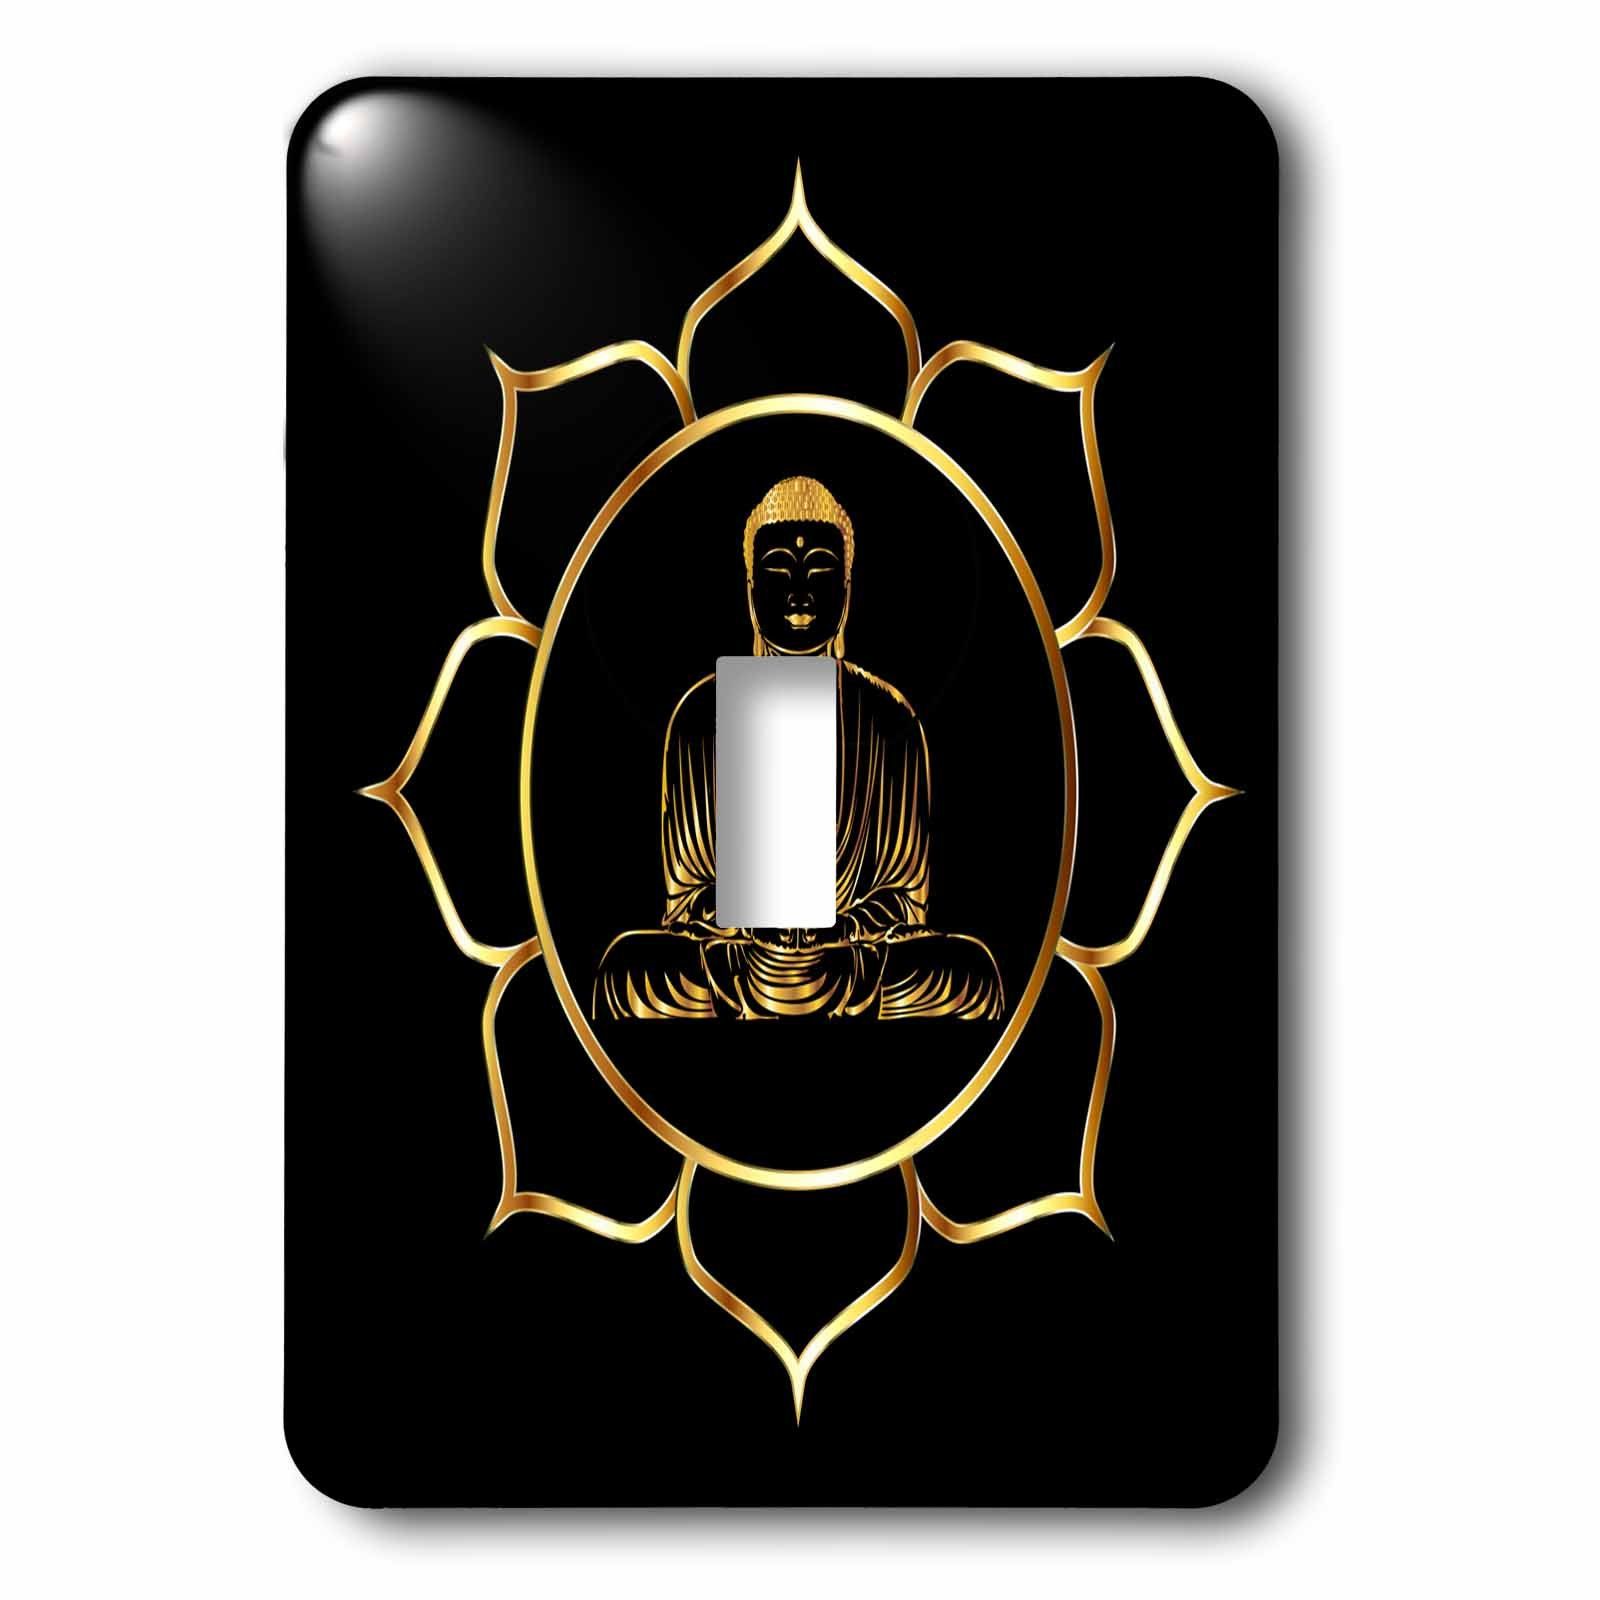 3dRose Sven Herkenrath Buddha - Buddha Asia Symbol Fantasy Thai Religion Spiritual Design Gold Black - Light Switch Covers - single toggle switch (lsp_254276_1)